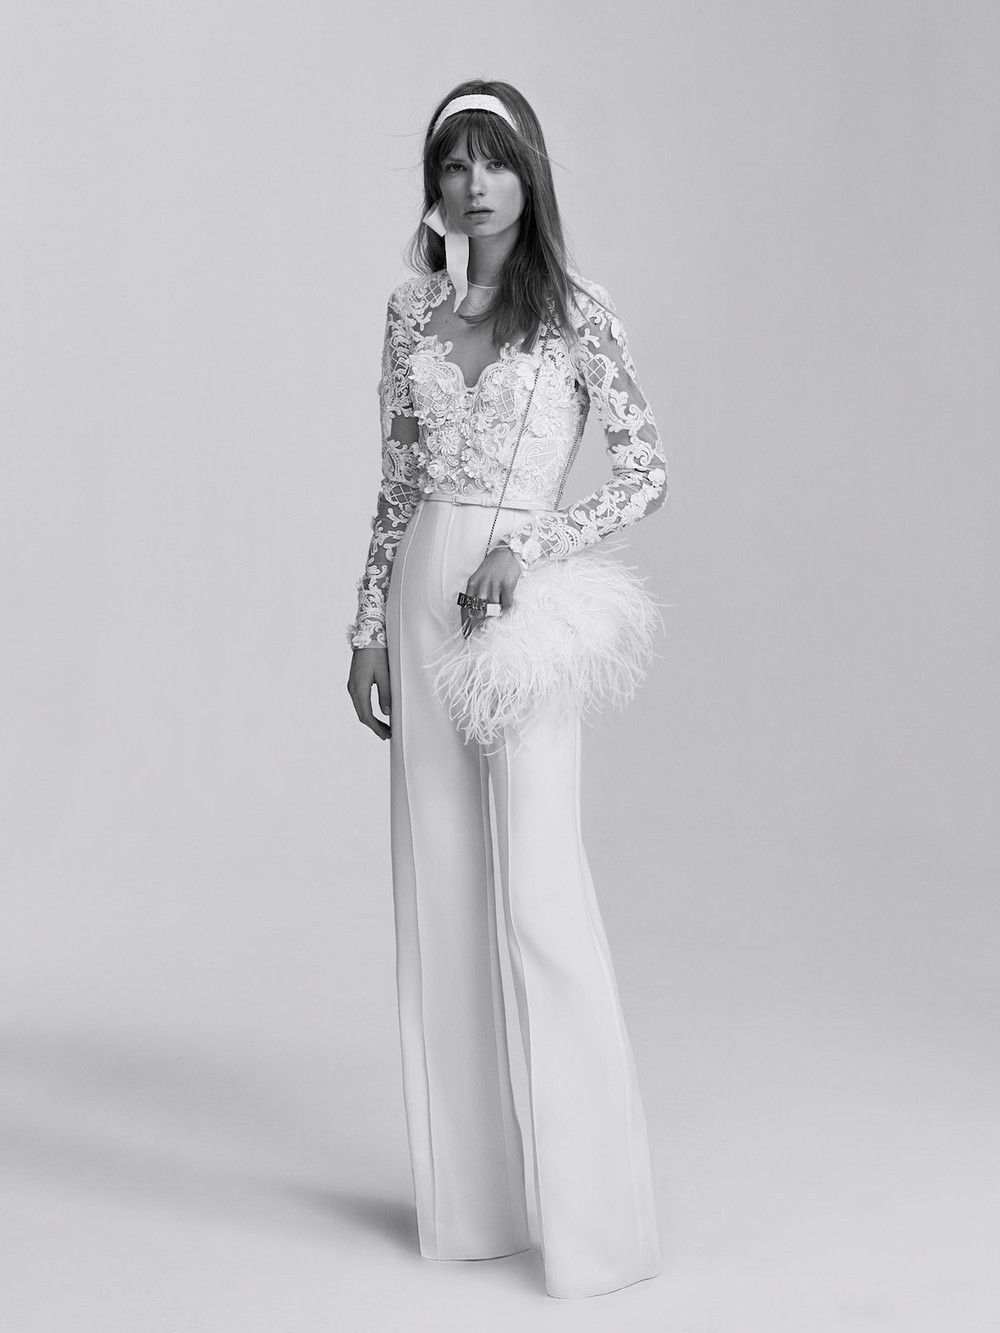 ELIE SAAB Bridal - why not marry in a suit? This one is just fabulous